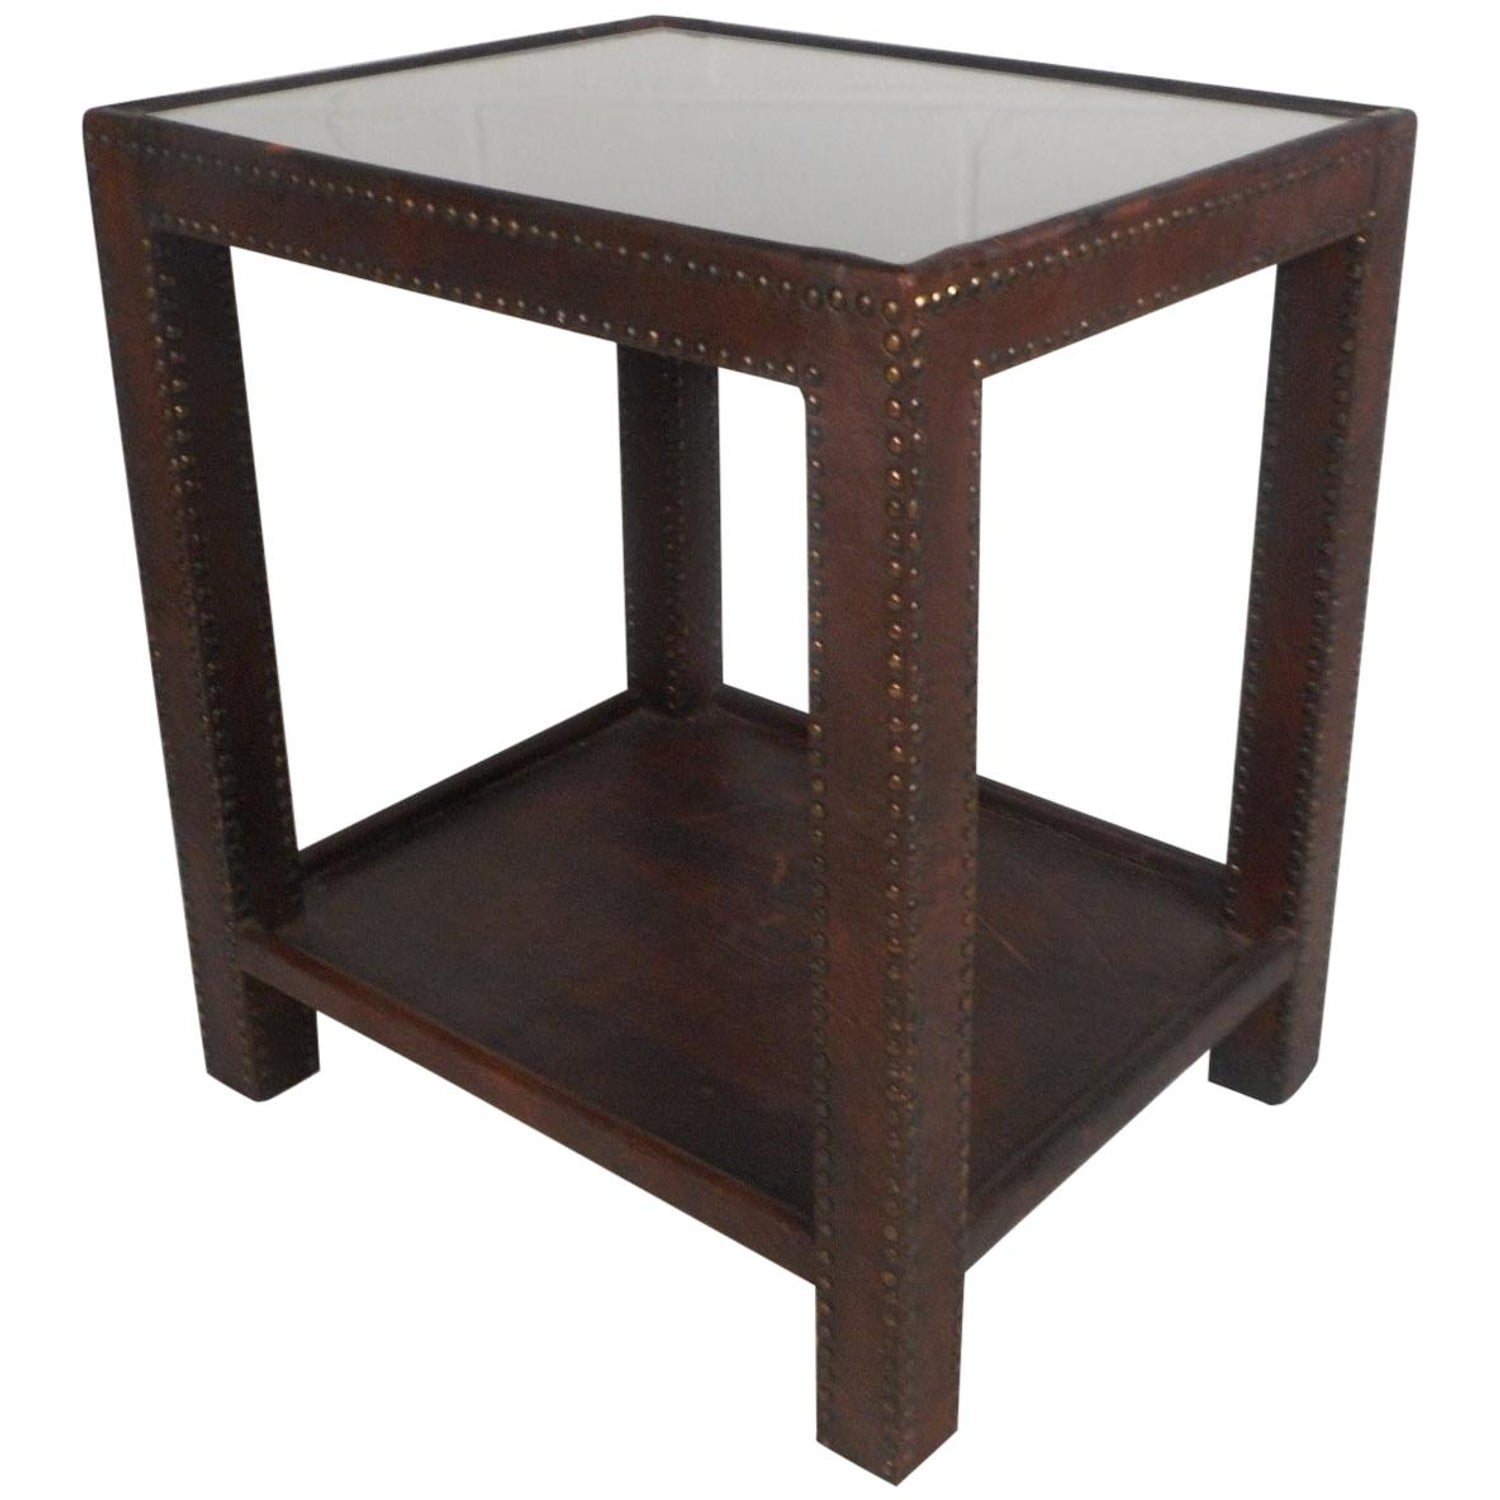 midcentury leather studded end table for master brown tables high top behind couch broyhill collections teak coffee toronto lucite accent with wheels small chinese laura ashley